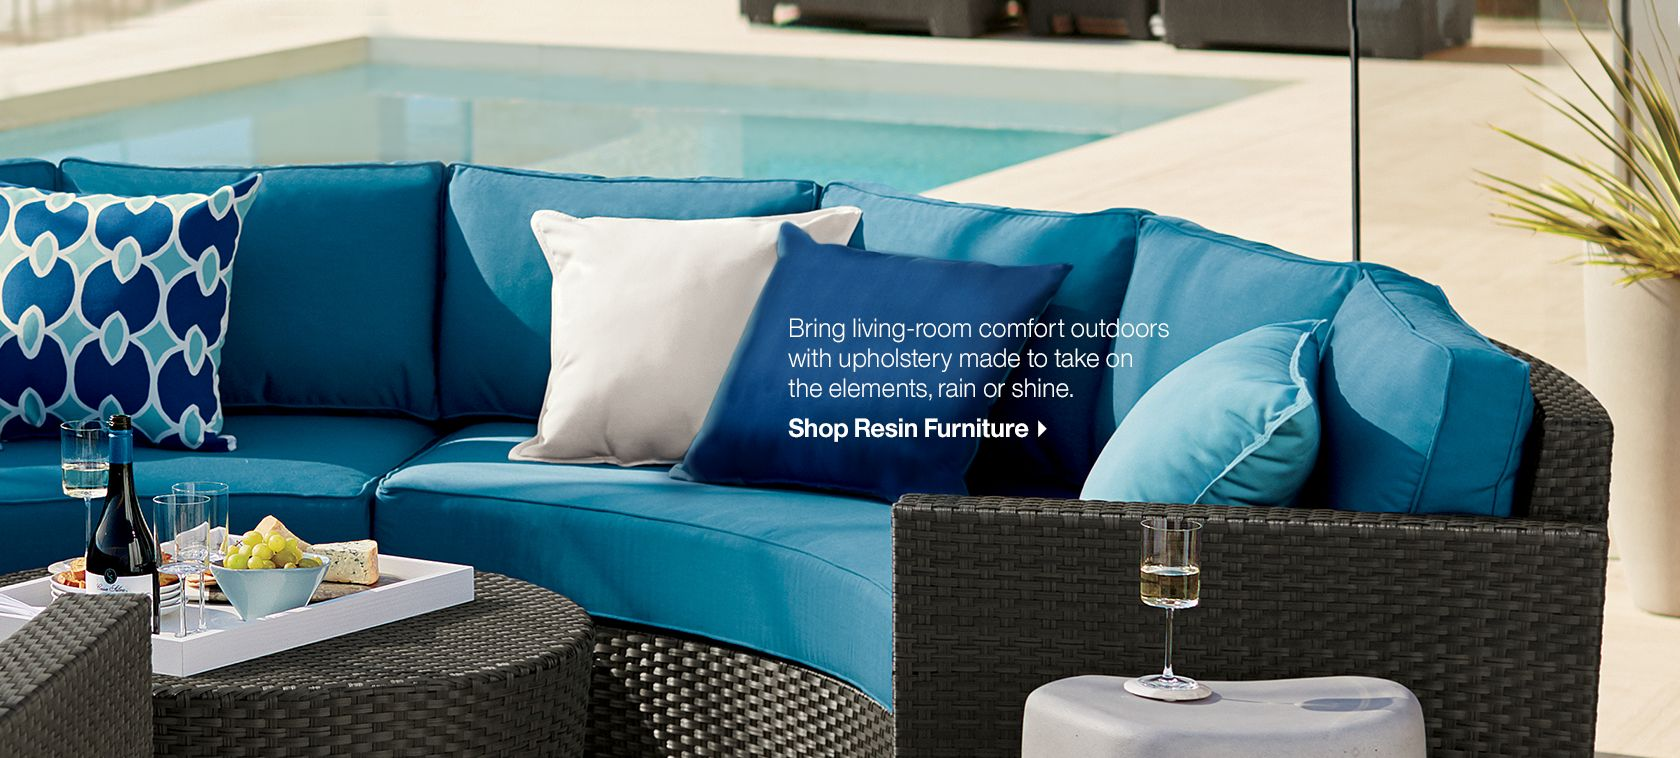 crate and barrel patio furniture outdoor furniture by material crate and barrel outdoor furniture by material barrel office barrel middot